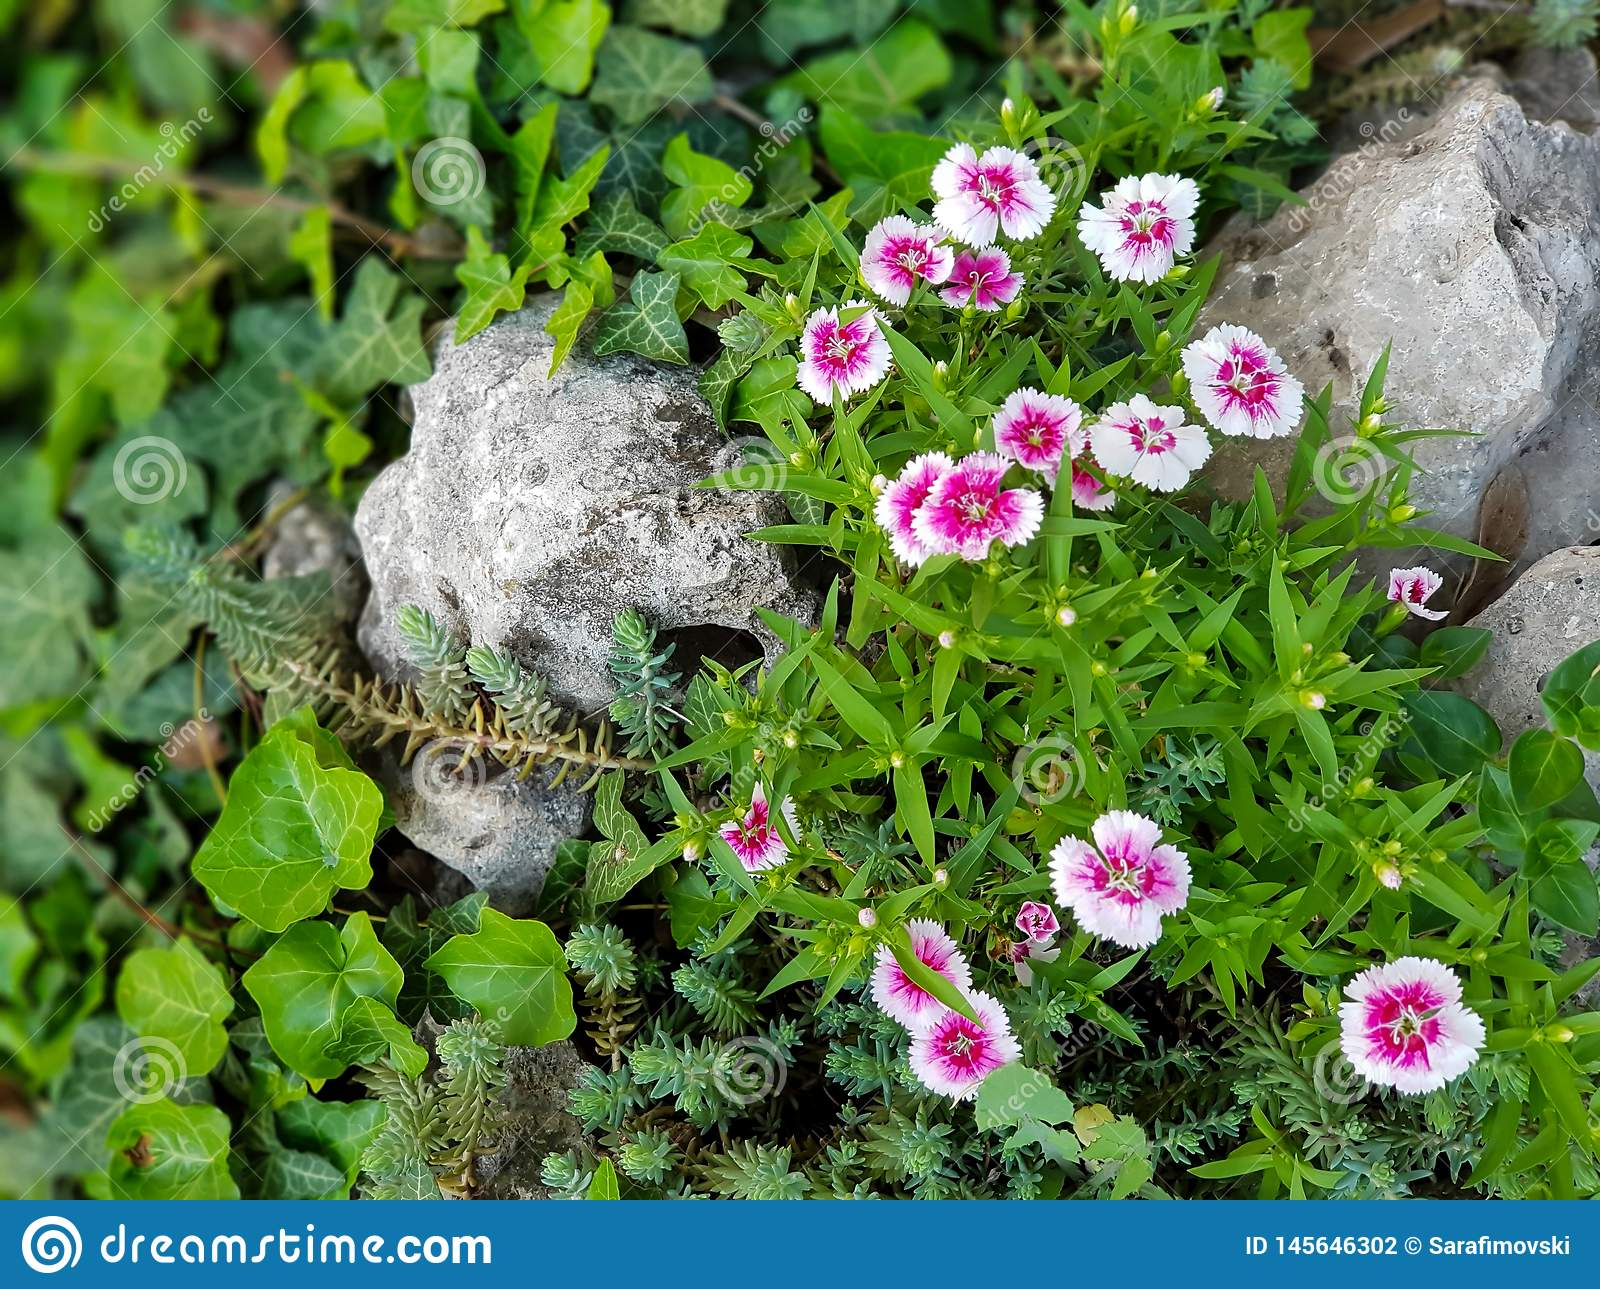 Beautiful pink and white wild flowers in grass and rocks